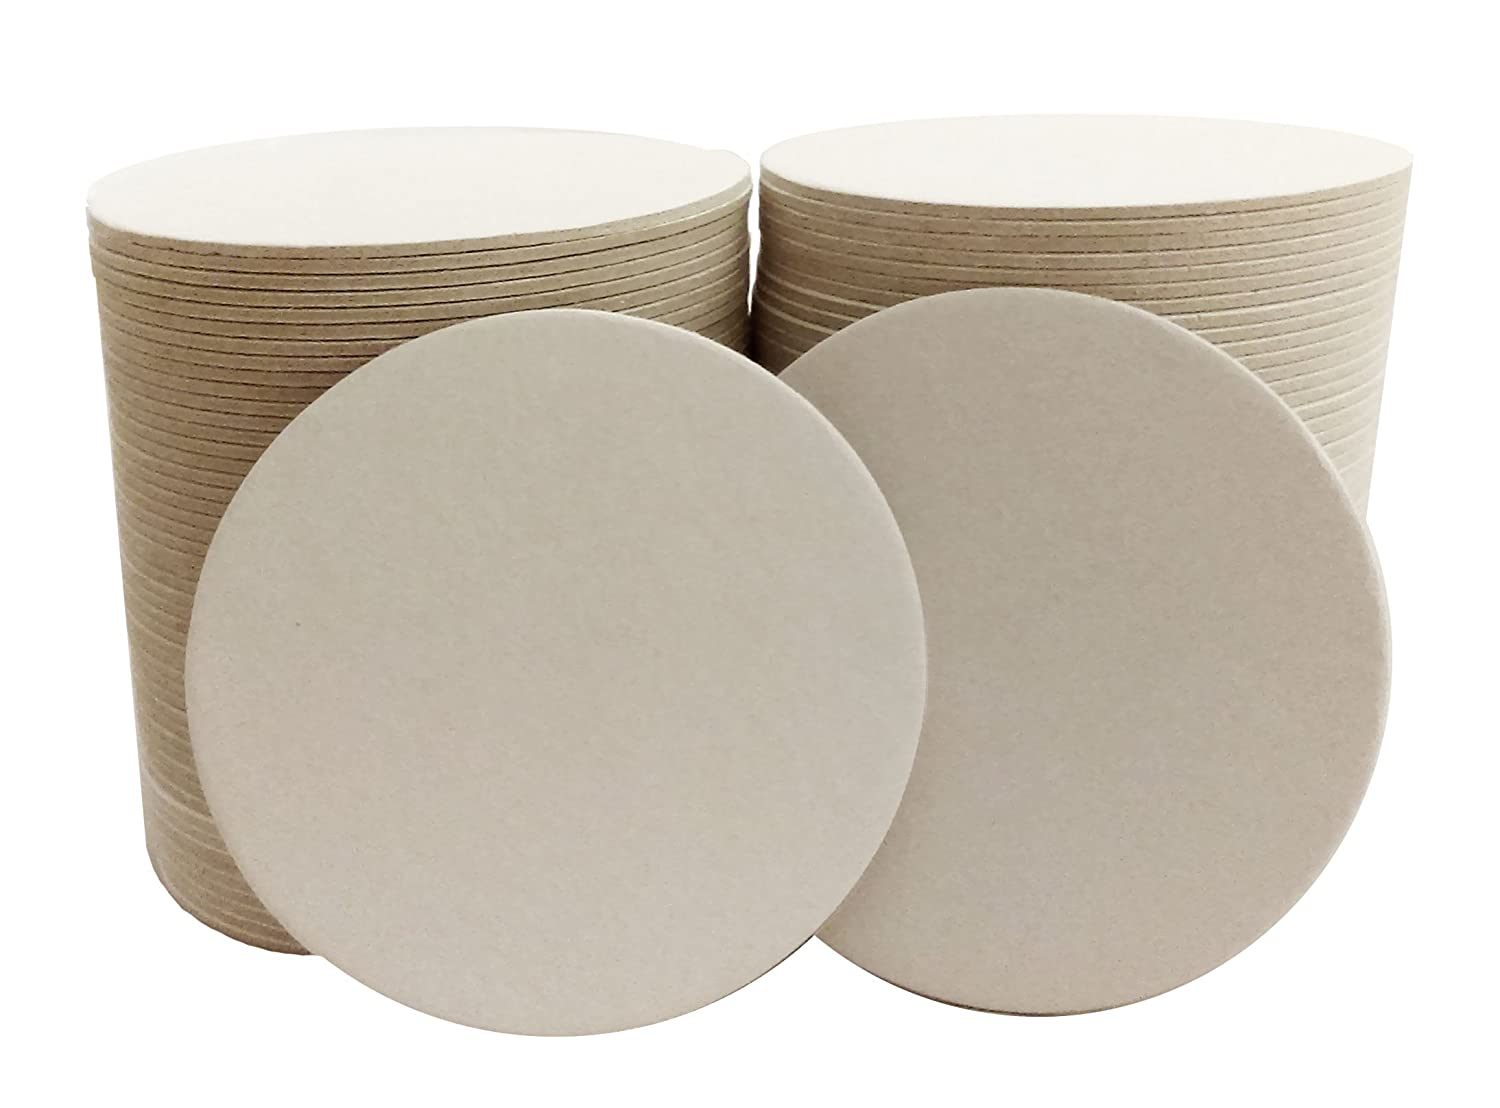 Inkfish and Co. ?100 Pack 3.5 Inch Round Blank Coasters Off White Color Heavyweight Cardboard Pulp Board Paper Made in USA Perfect For All Drinks DIY Craft Projects Printing Mini Art Zen Boards